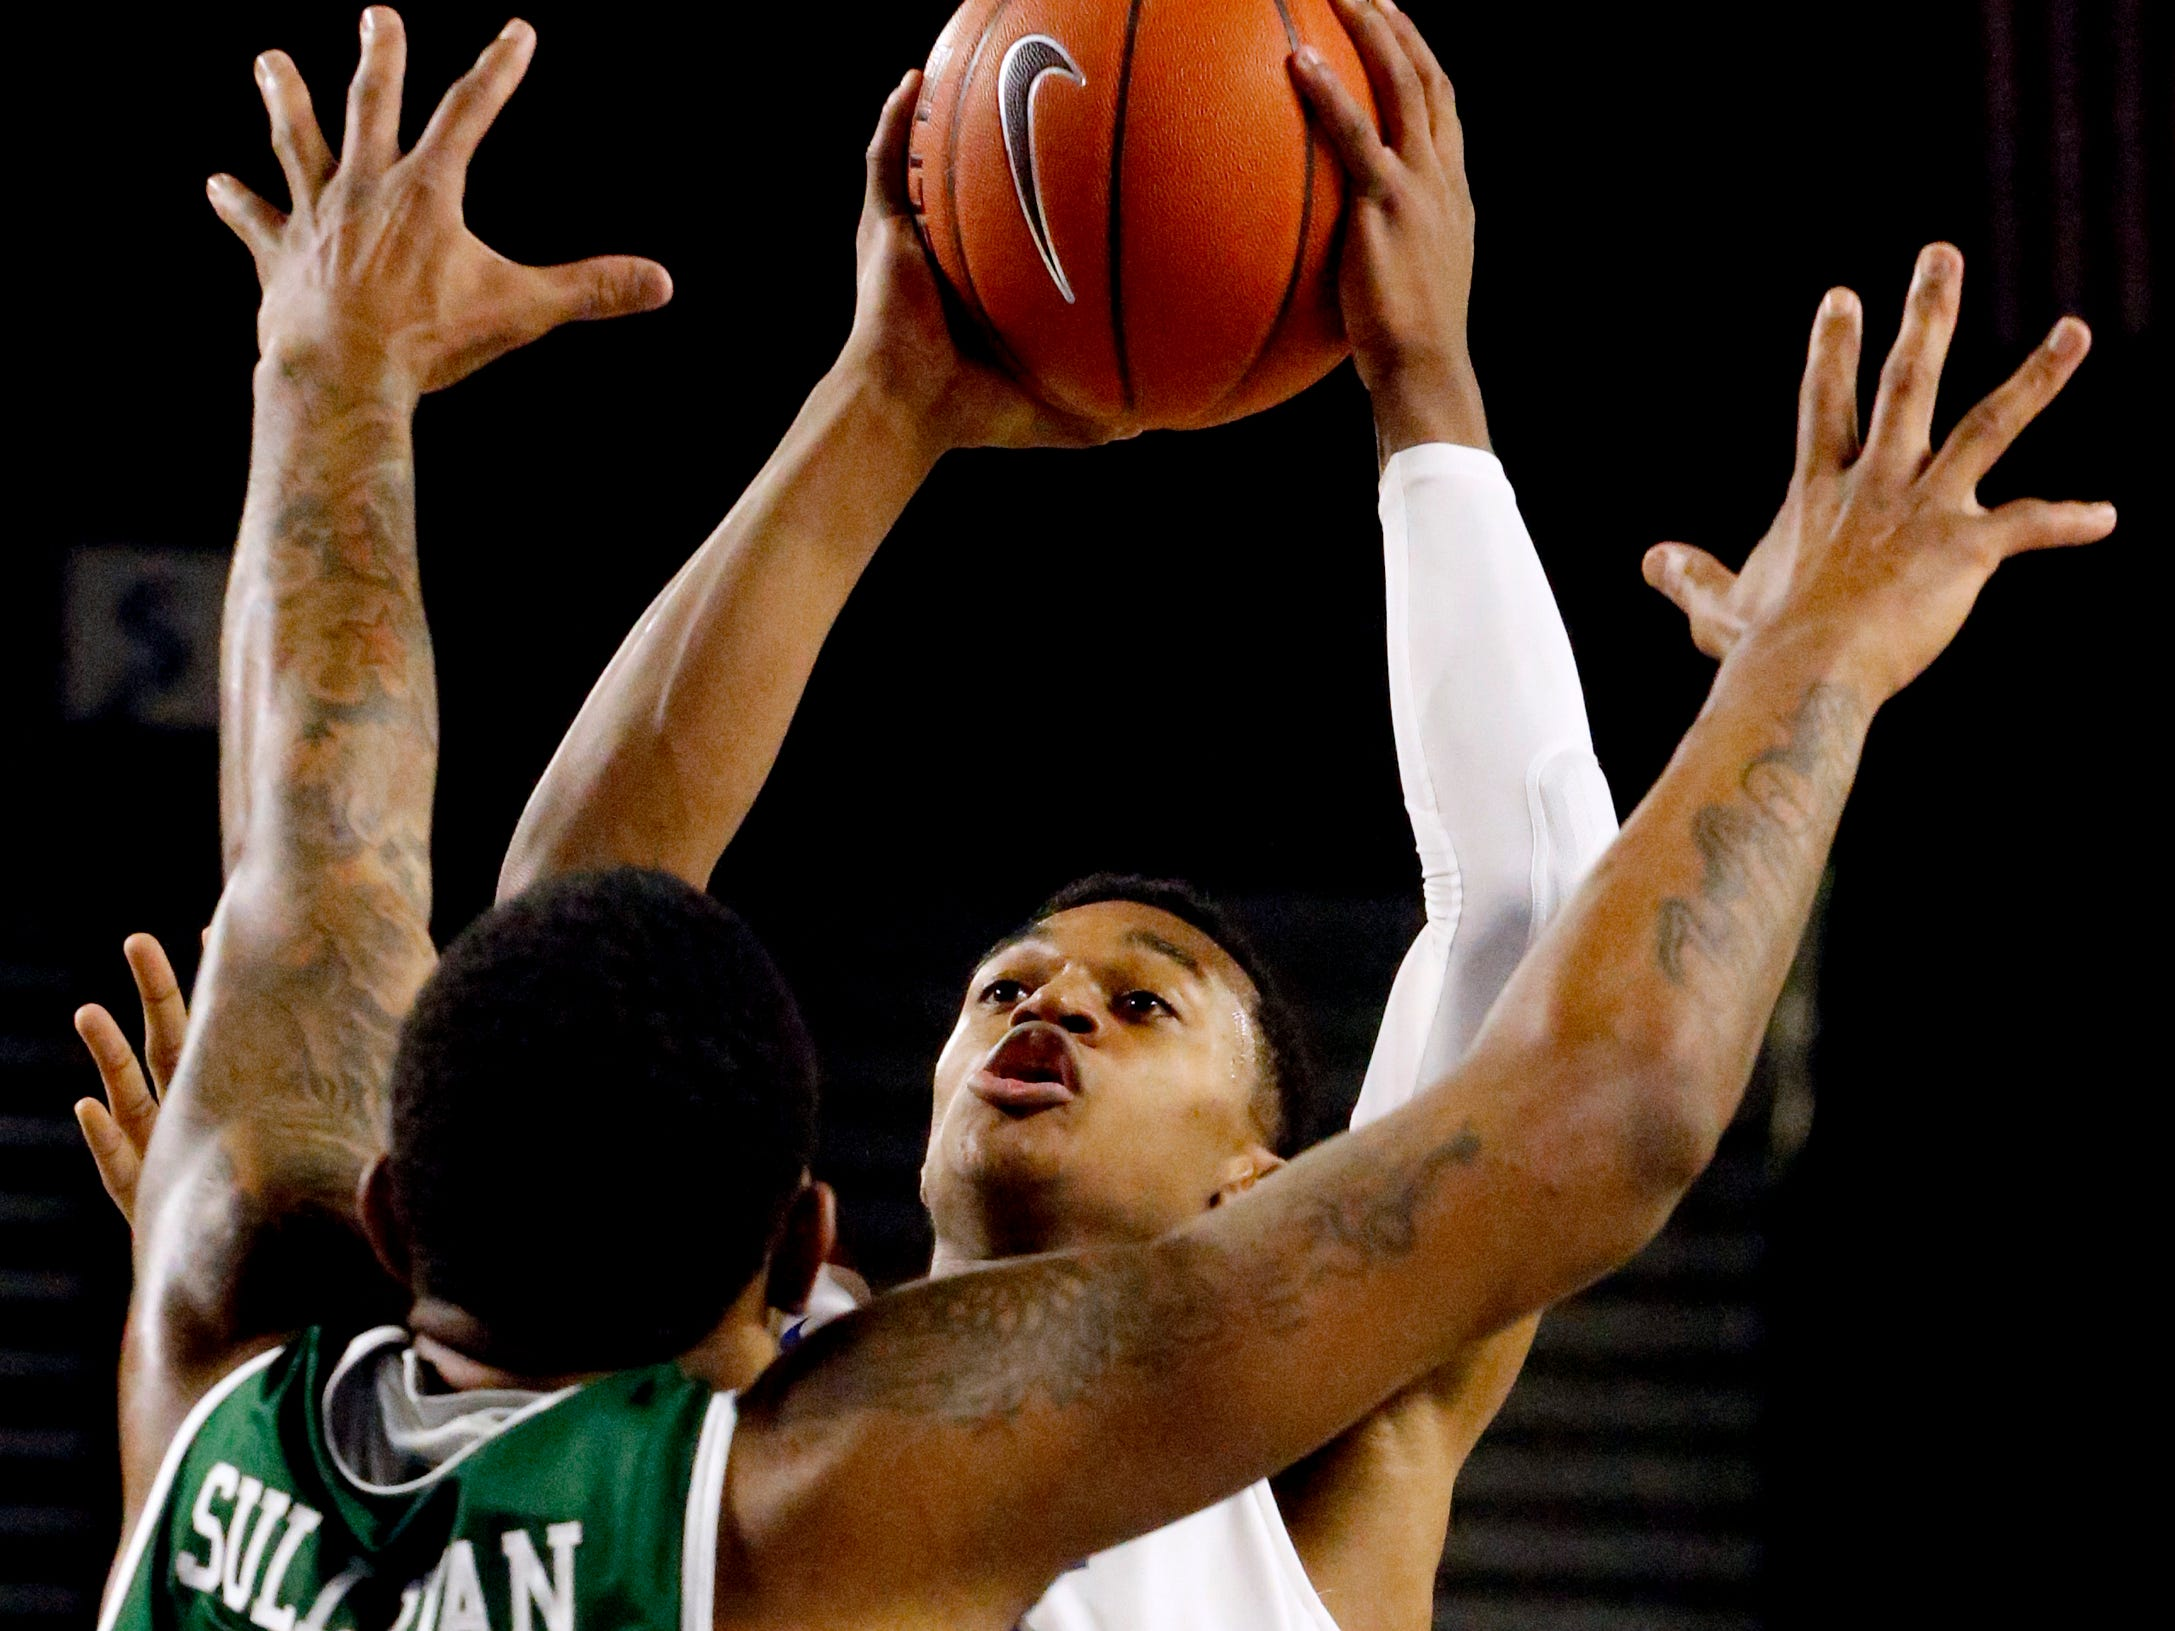 MTSU guard Jayce Johnson (10) goes up for a shot as UAB's forward Lewis Sullivan (23) guards him on Wednesday Jan. 30, 2019.